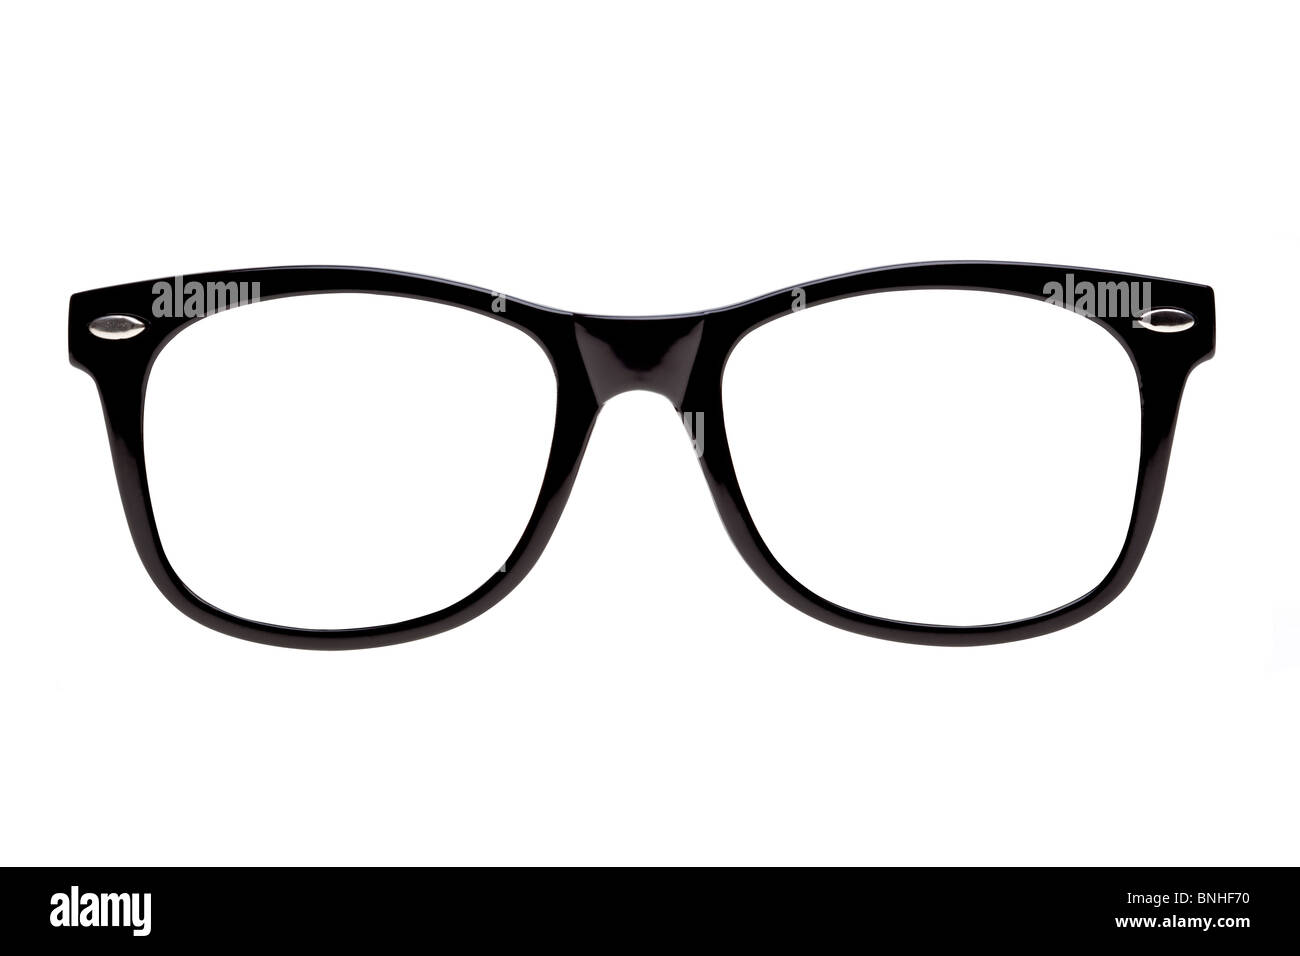 Photo of Black spectacle frames the type of glasses nerds wear, isolated on white with clipping paths for the frames - Stock Image